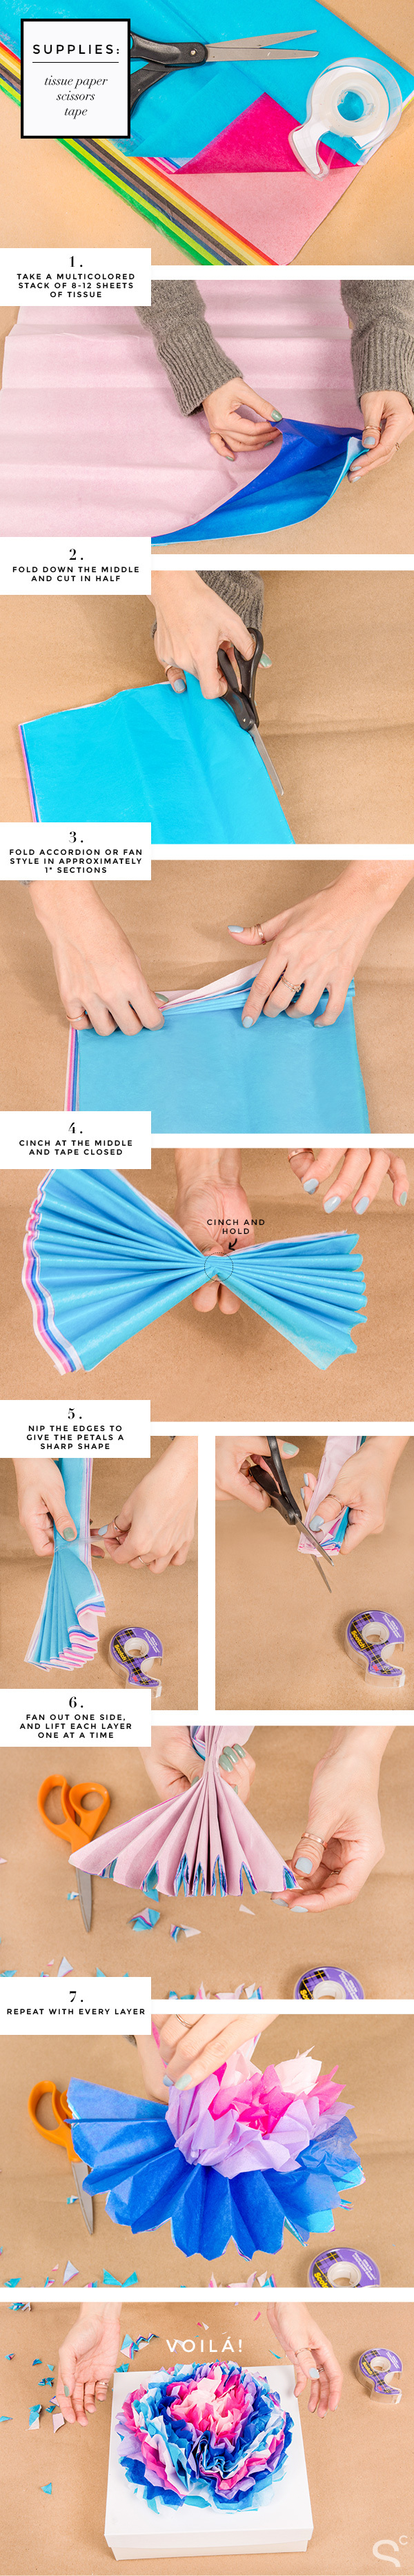 diy-gift-wrapping-packaging-ideas-paper-flower